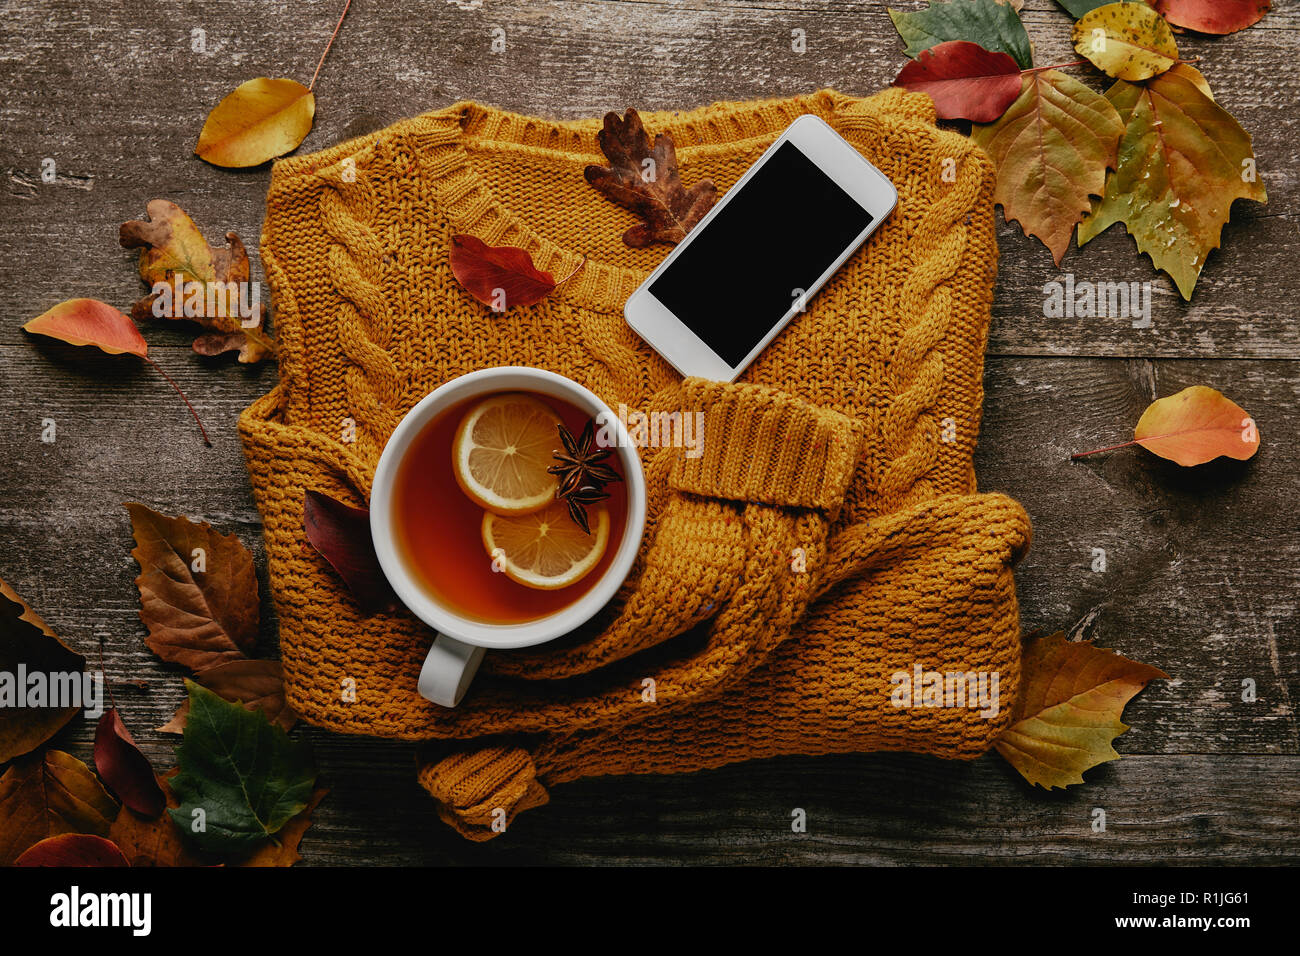 flat lay with cup of tea, ornage sweater, smartphone with blank screen and fallen leaves on wooden surface - Stock Image